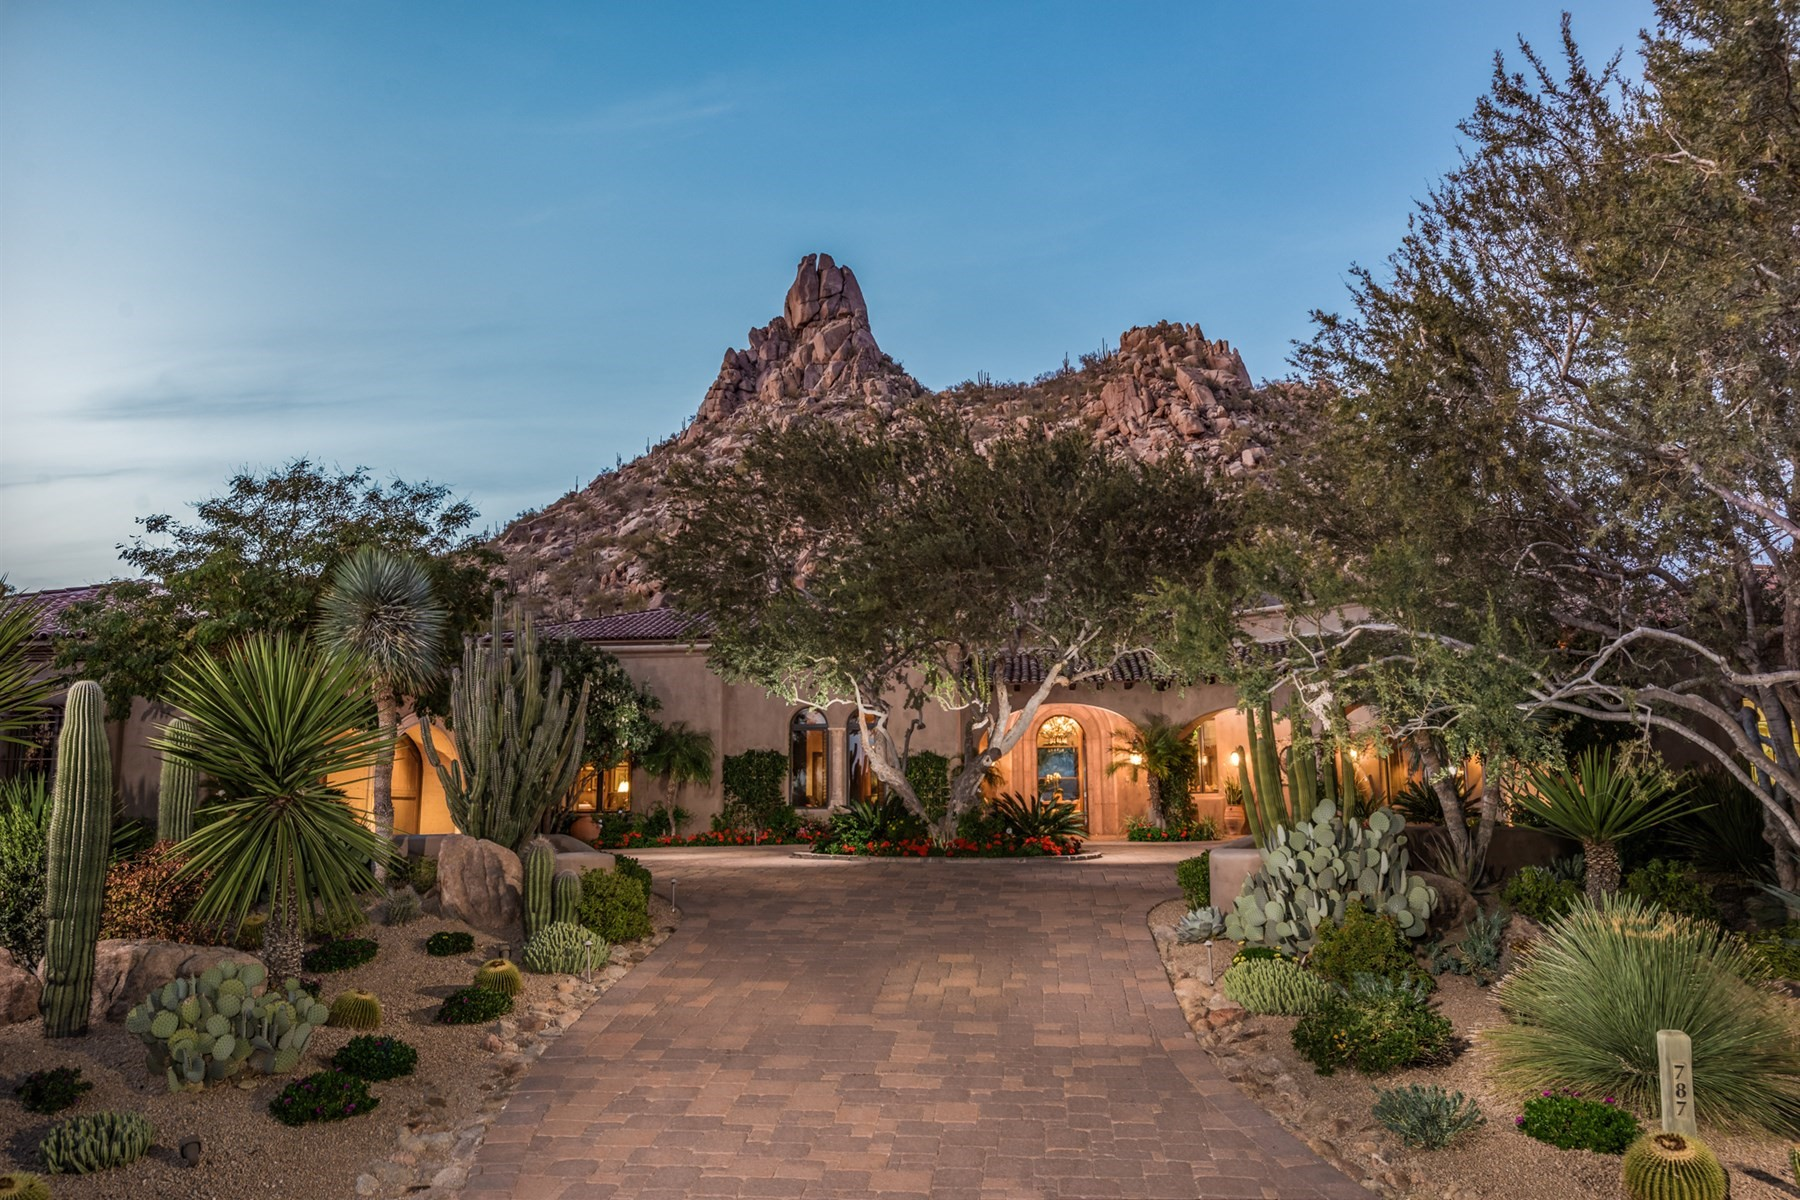 Single Family Home for Sale at Spectacular home nestled at the base of Pinnacle Peak 10040 E HAPPY VALLEY RD 787, Scottsdale, Arizona, 85255 United States